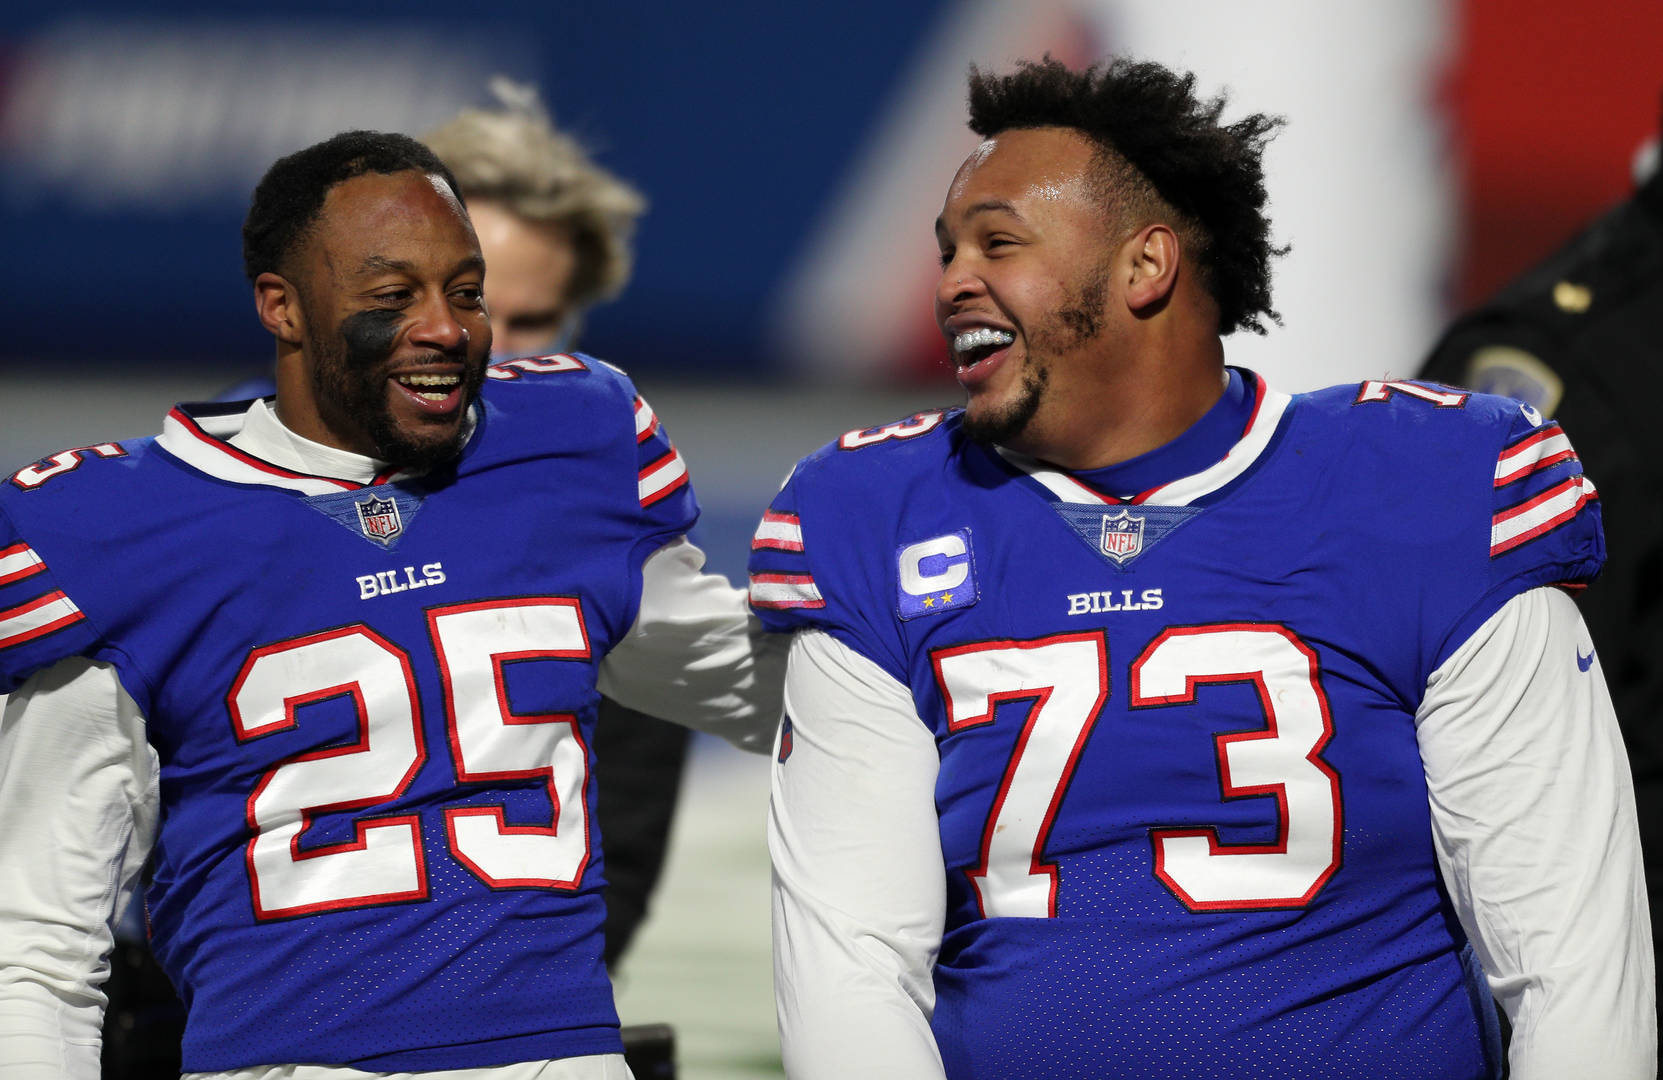 Bills smother Ravens, advance to AFC title game